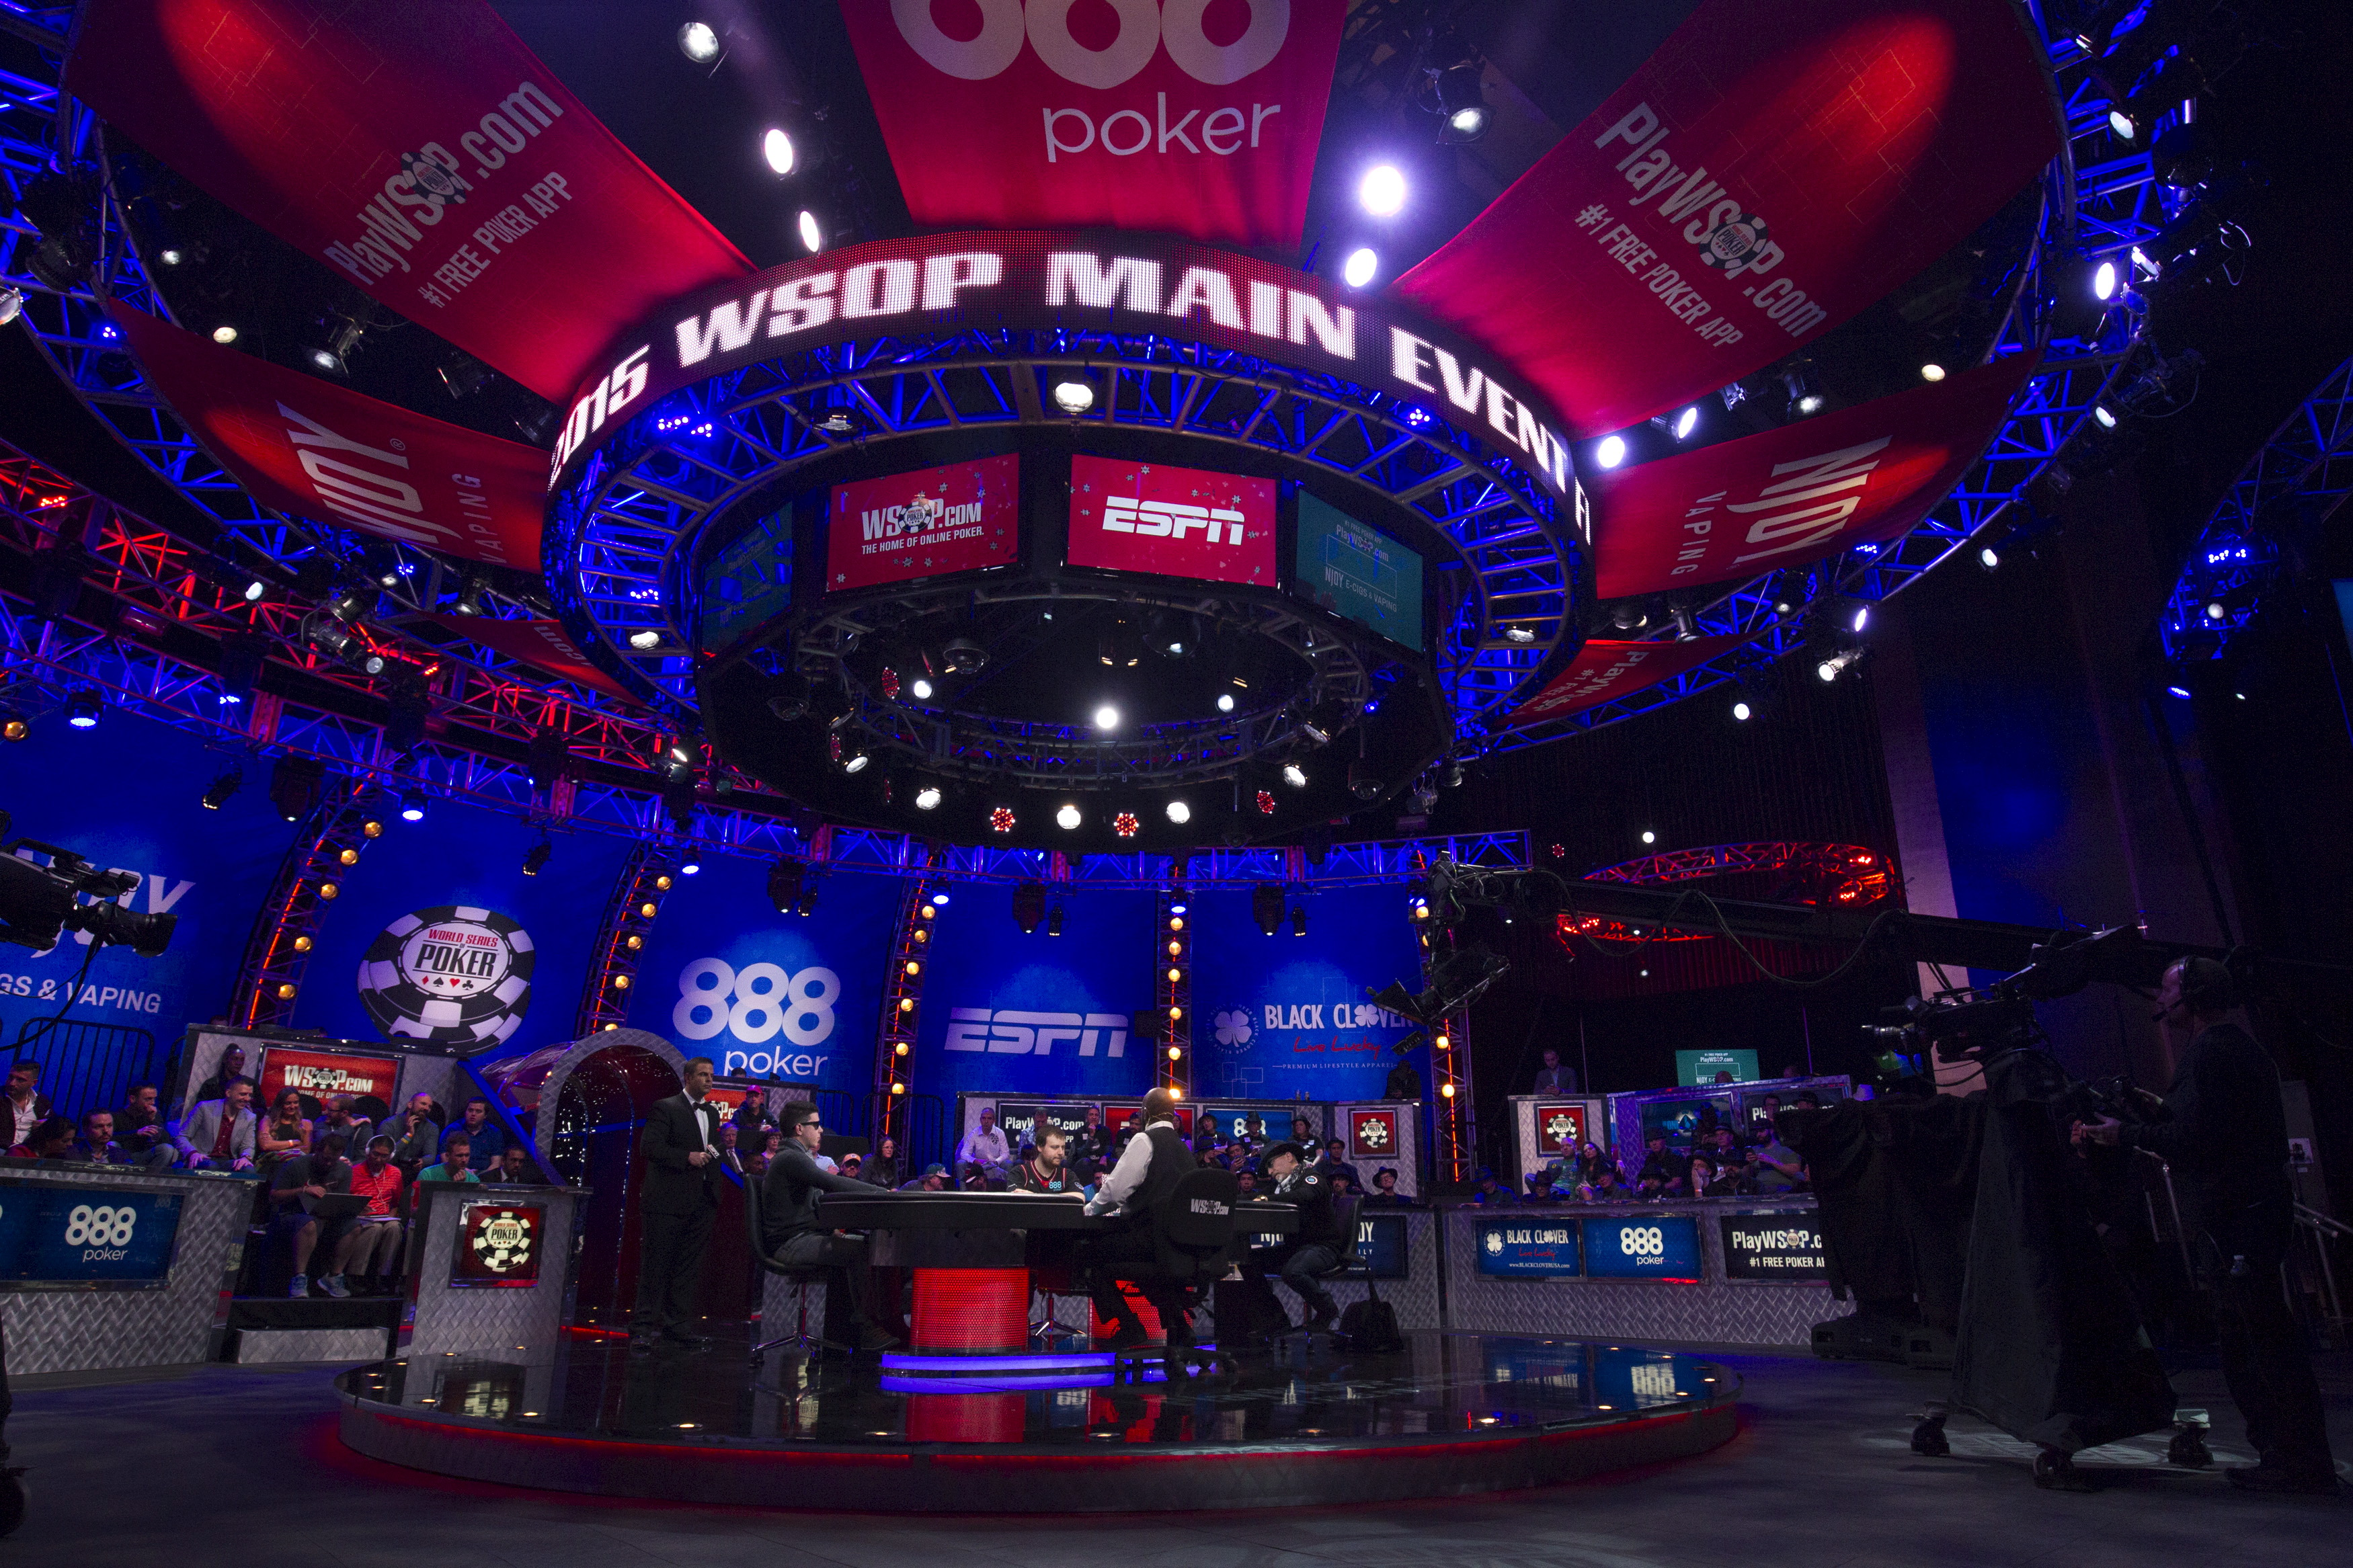 world series of poker main event schedule